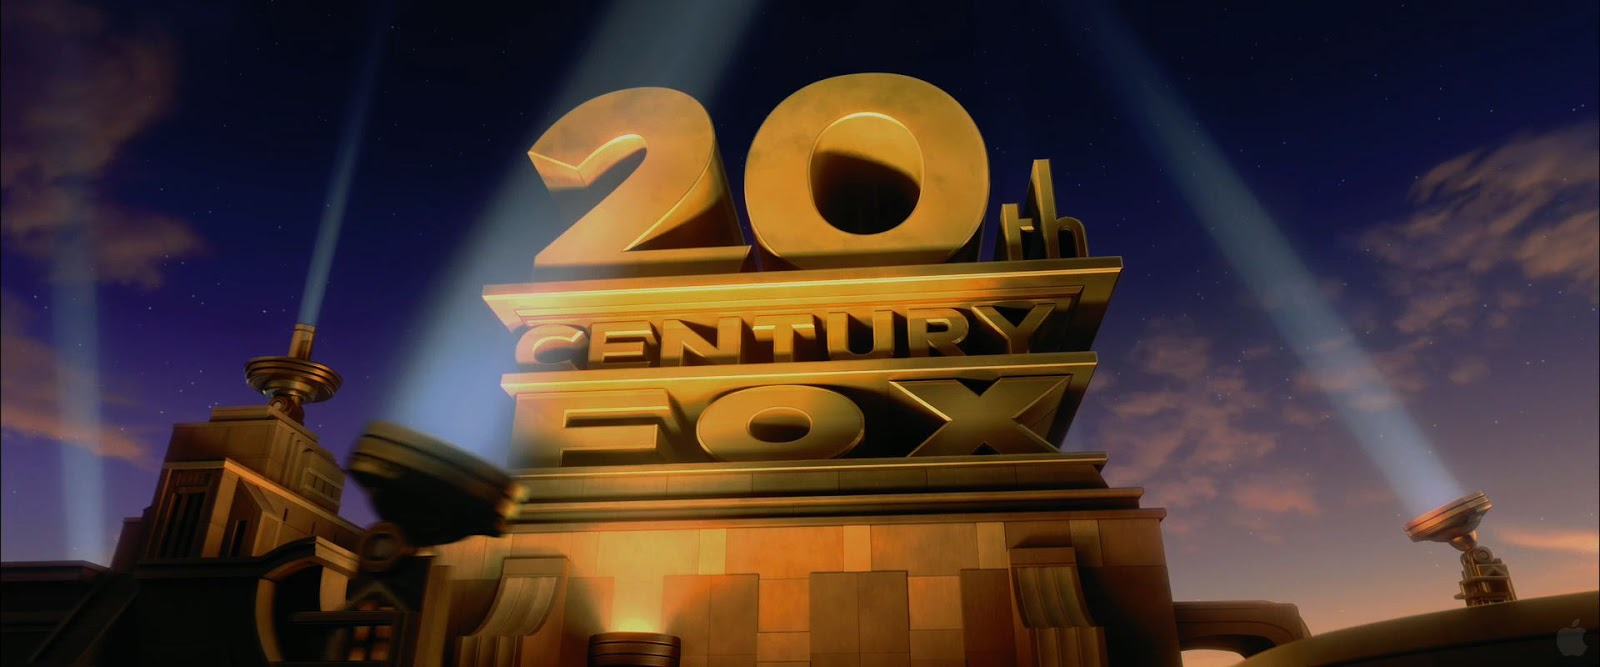 0th Century Fox Logo Wallpapers brands wallpapers hd